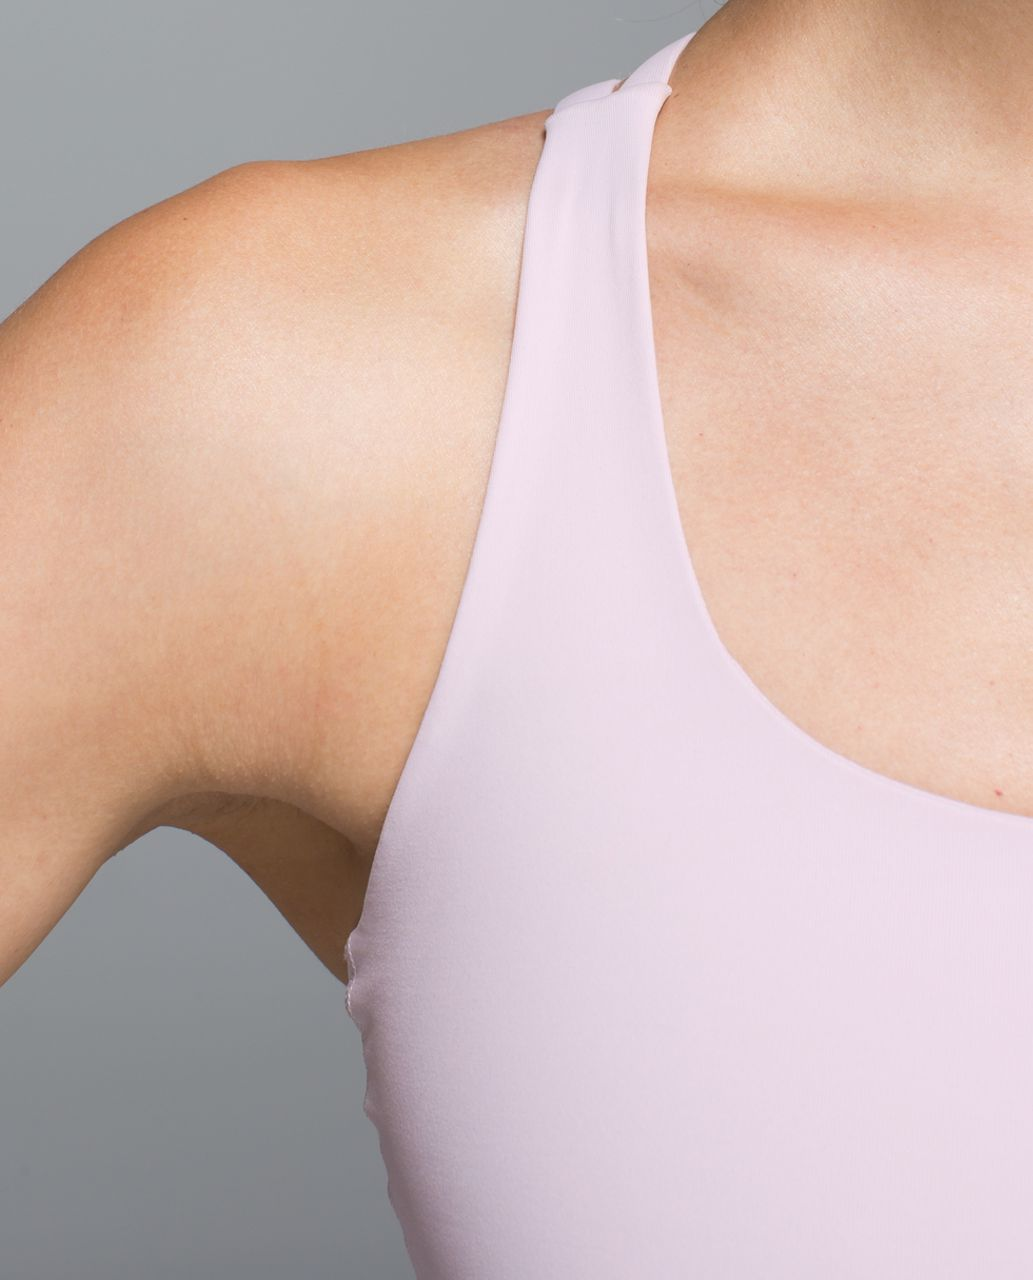 Lululemon Energy Bra - Neutral Blush